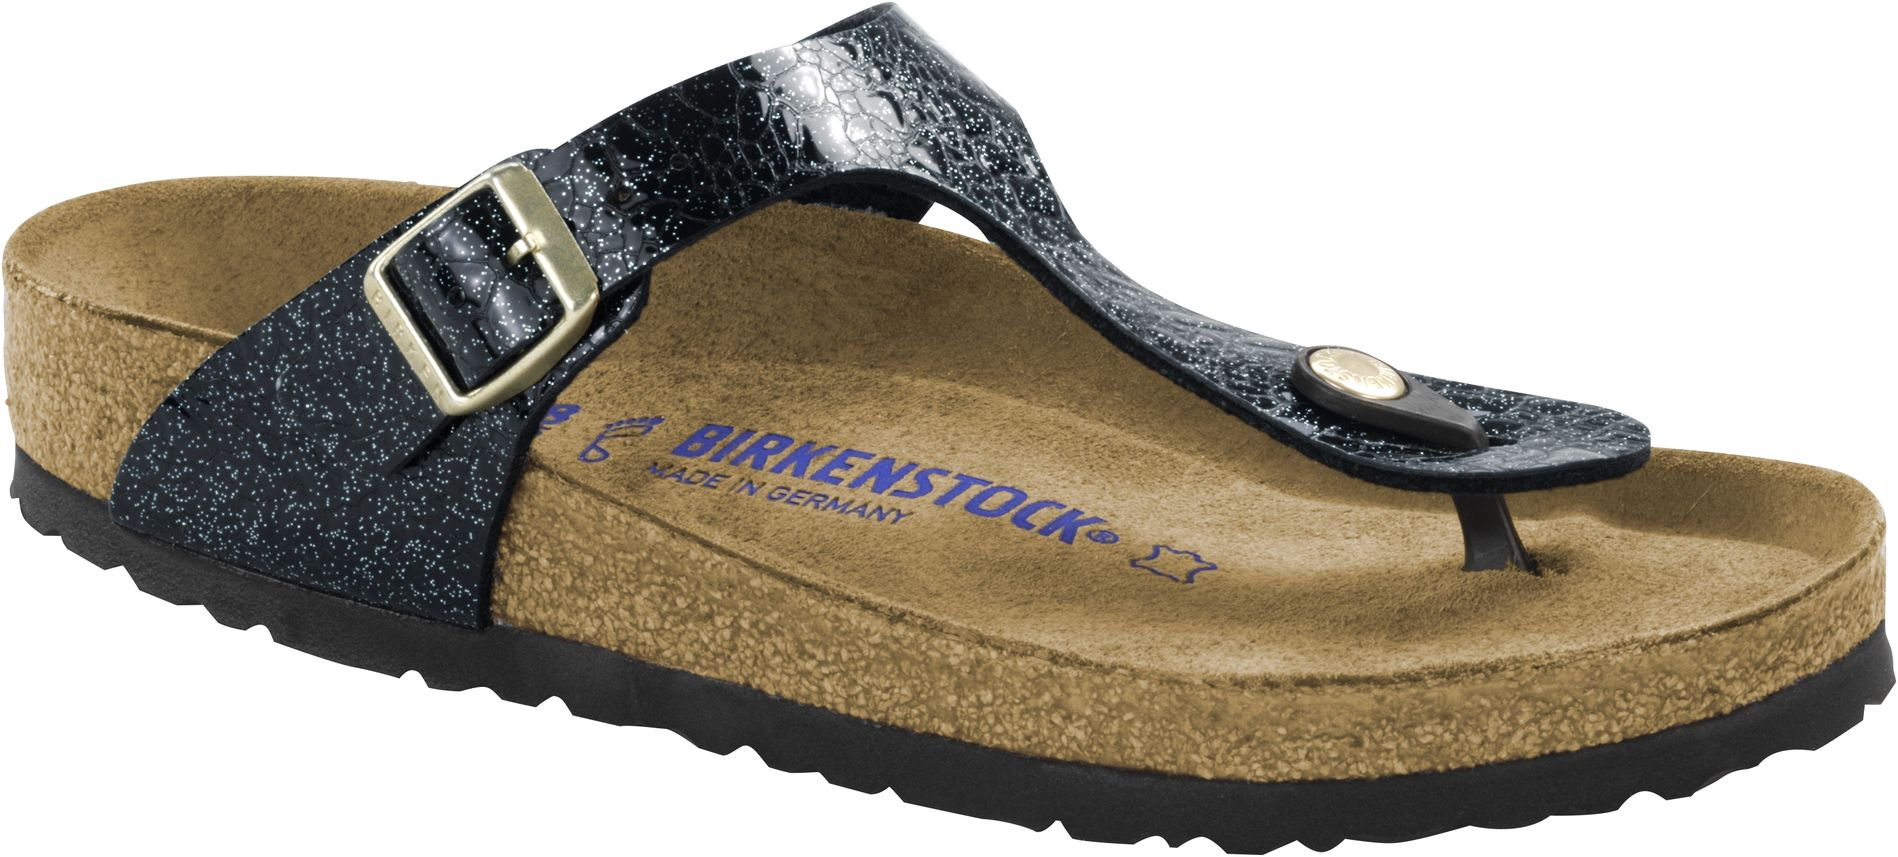 b7d5a0373952 Preview  Birkenstock Gizeh Myda Night Soft Footbed ...